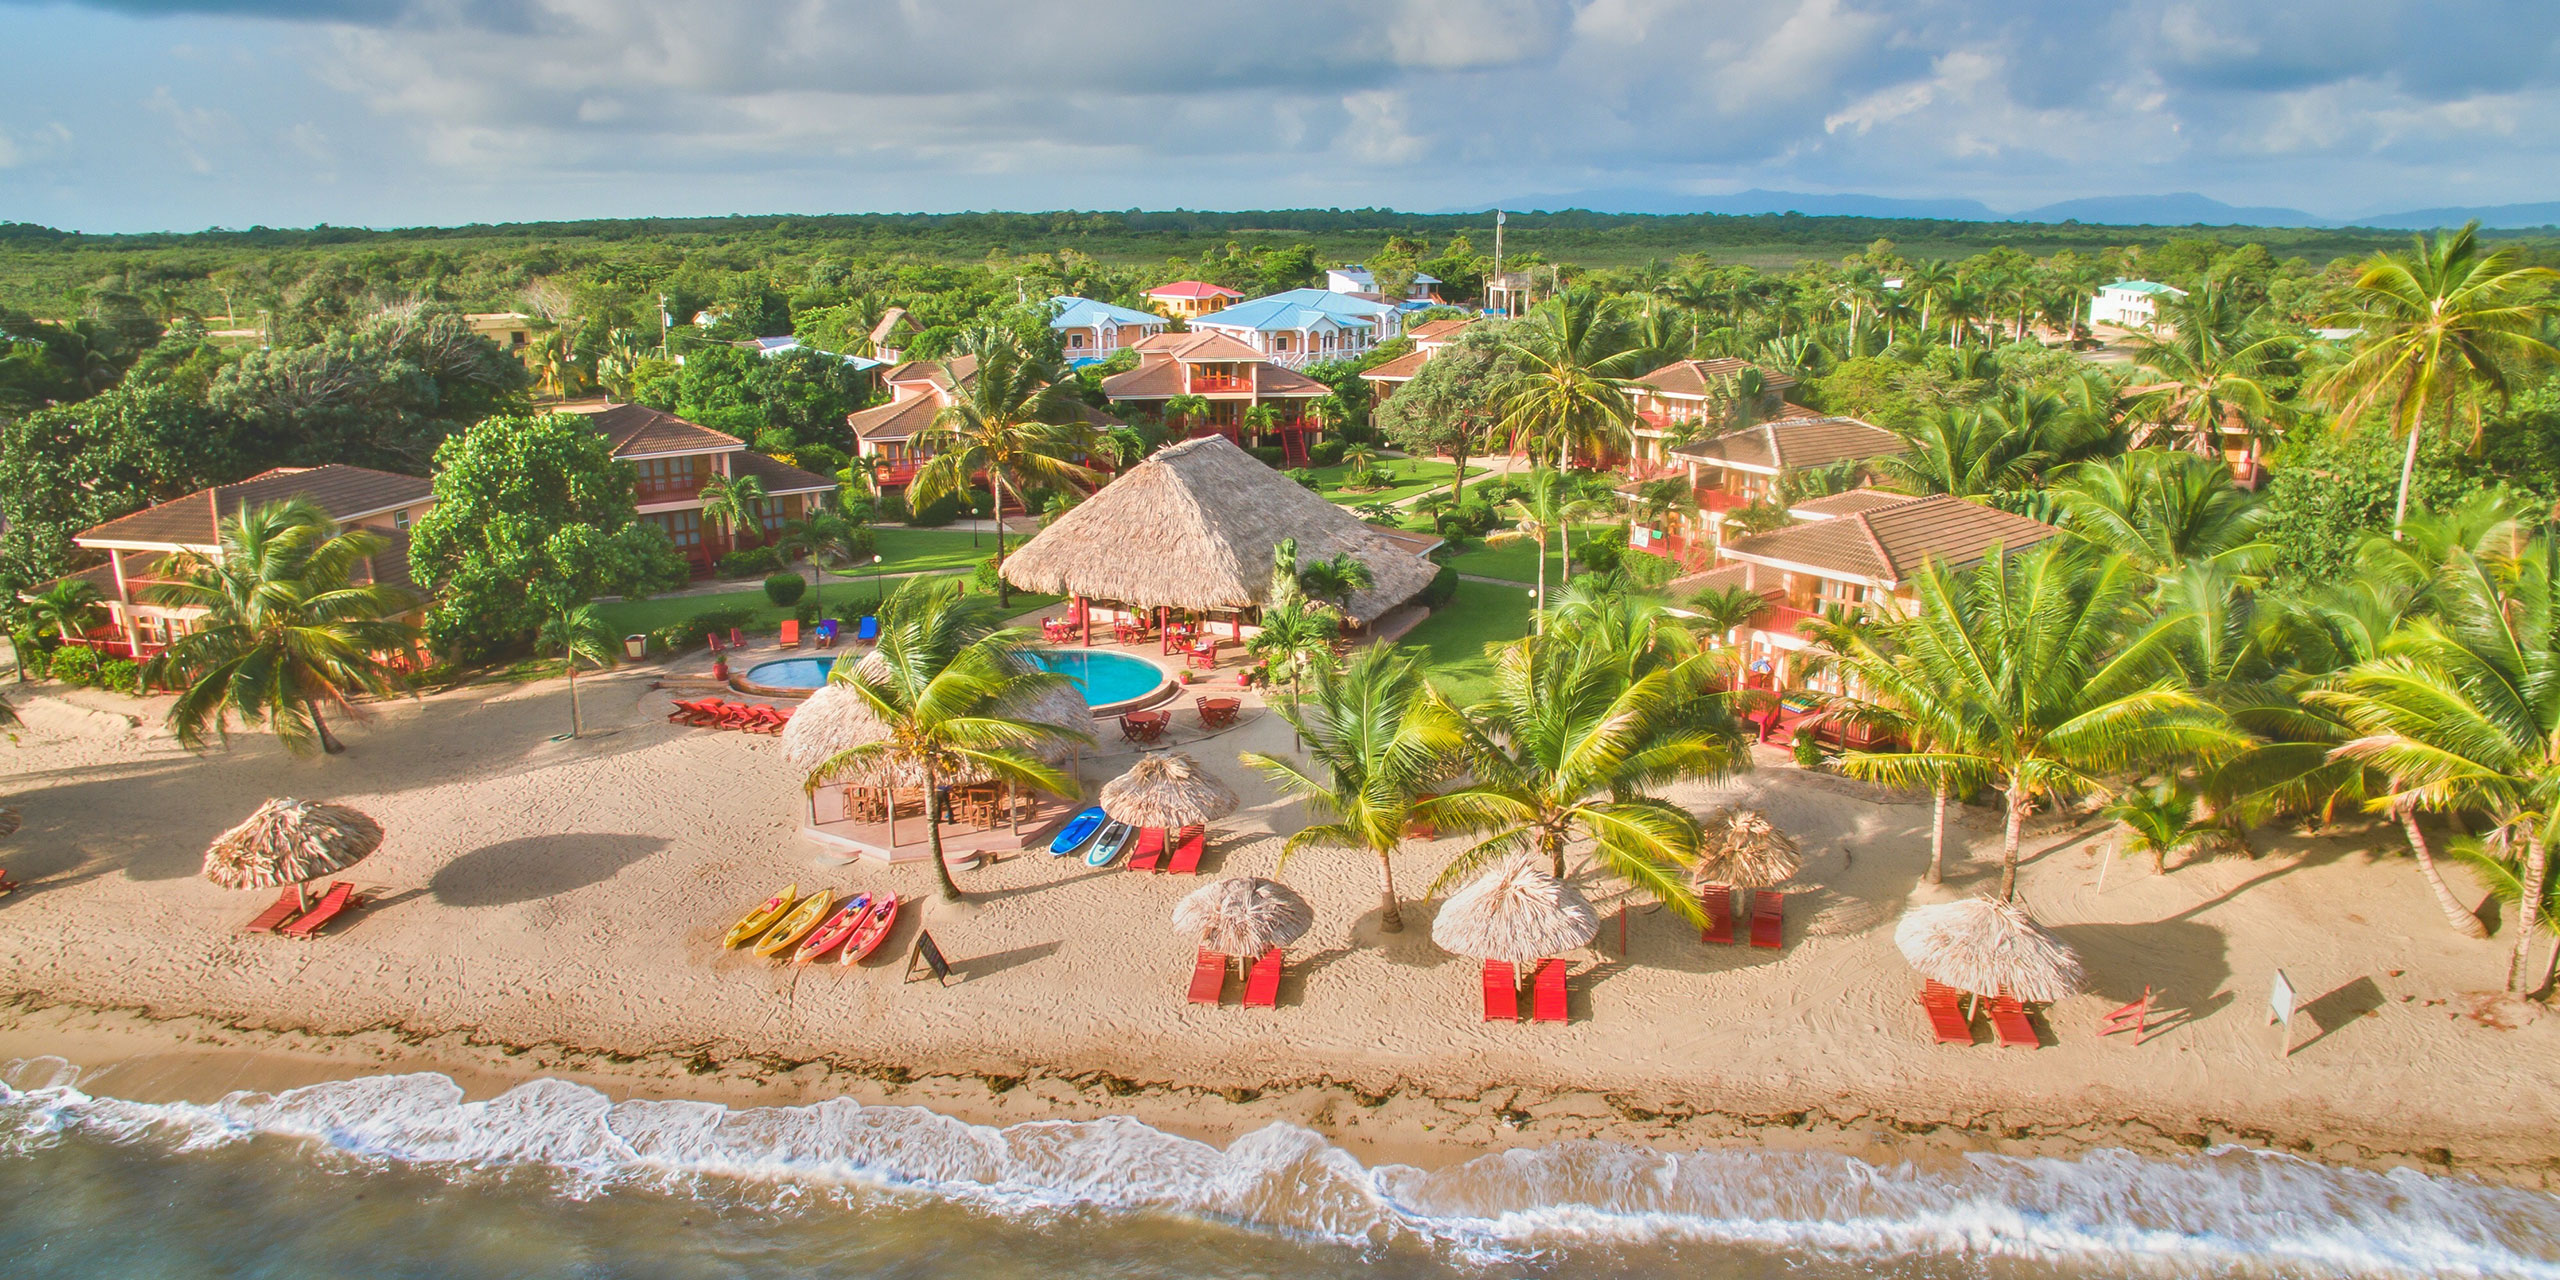 All Inclusive Resort 11 Best All Inclusive Resorts For First Timers Family Vacation